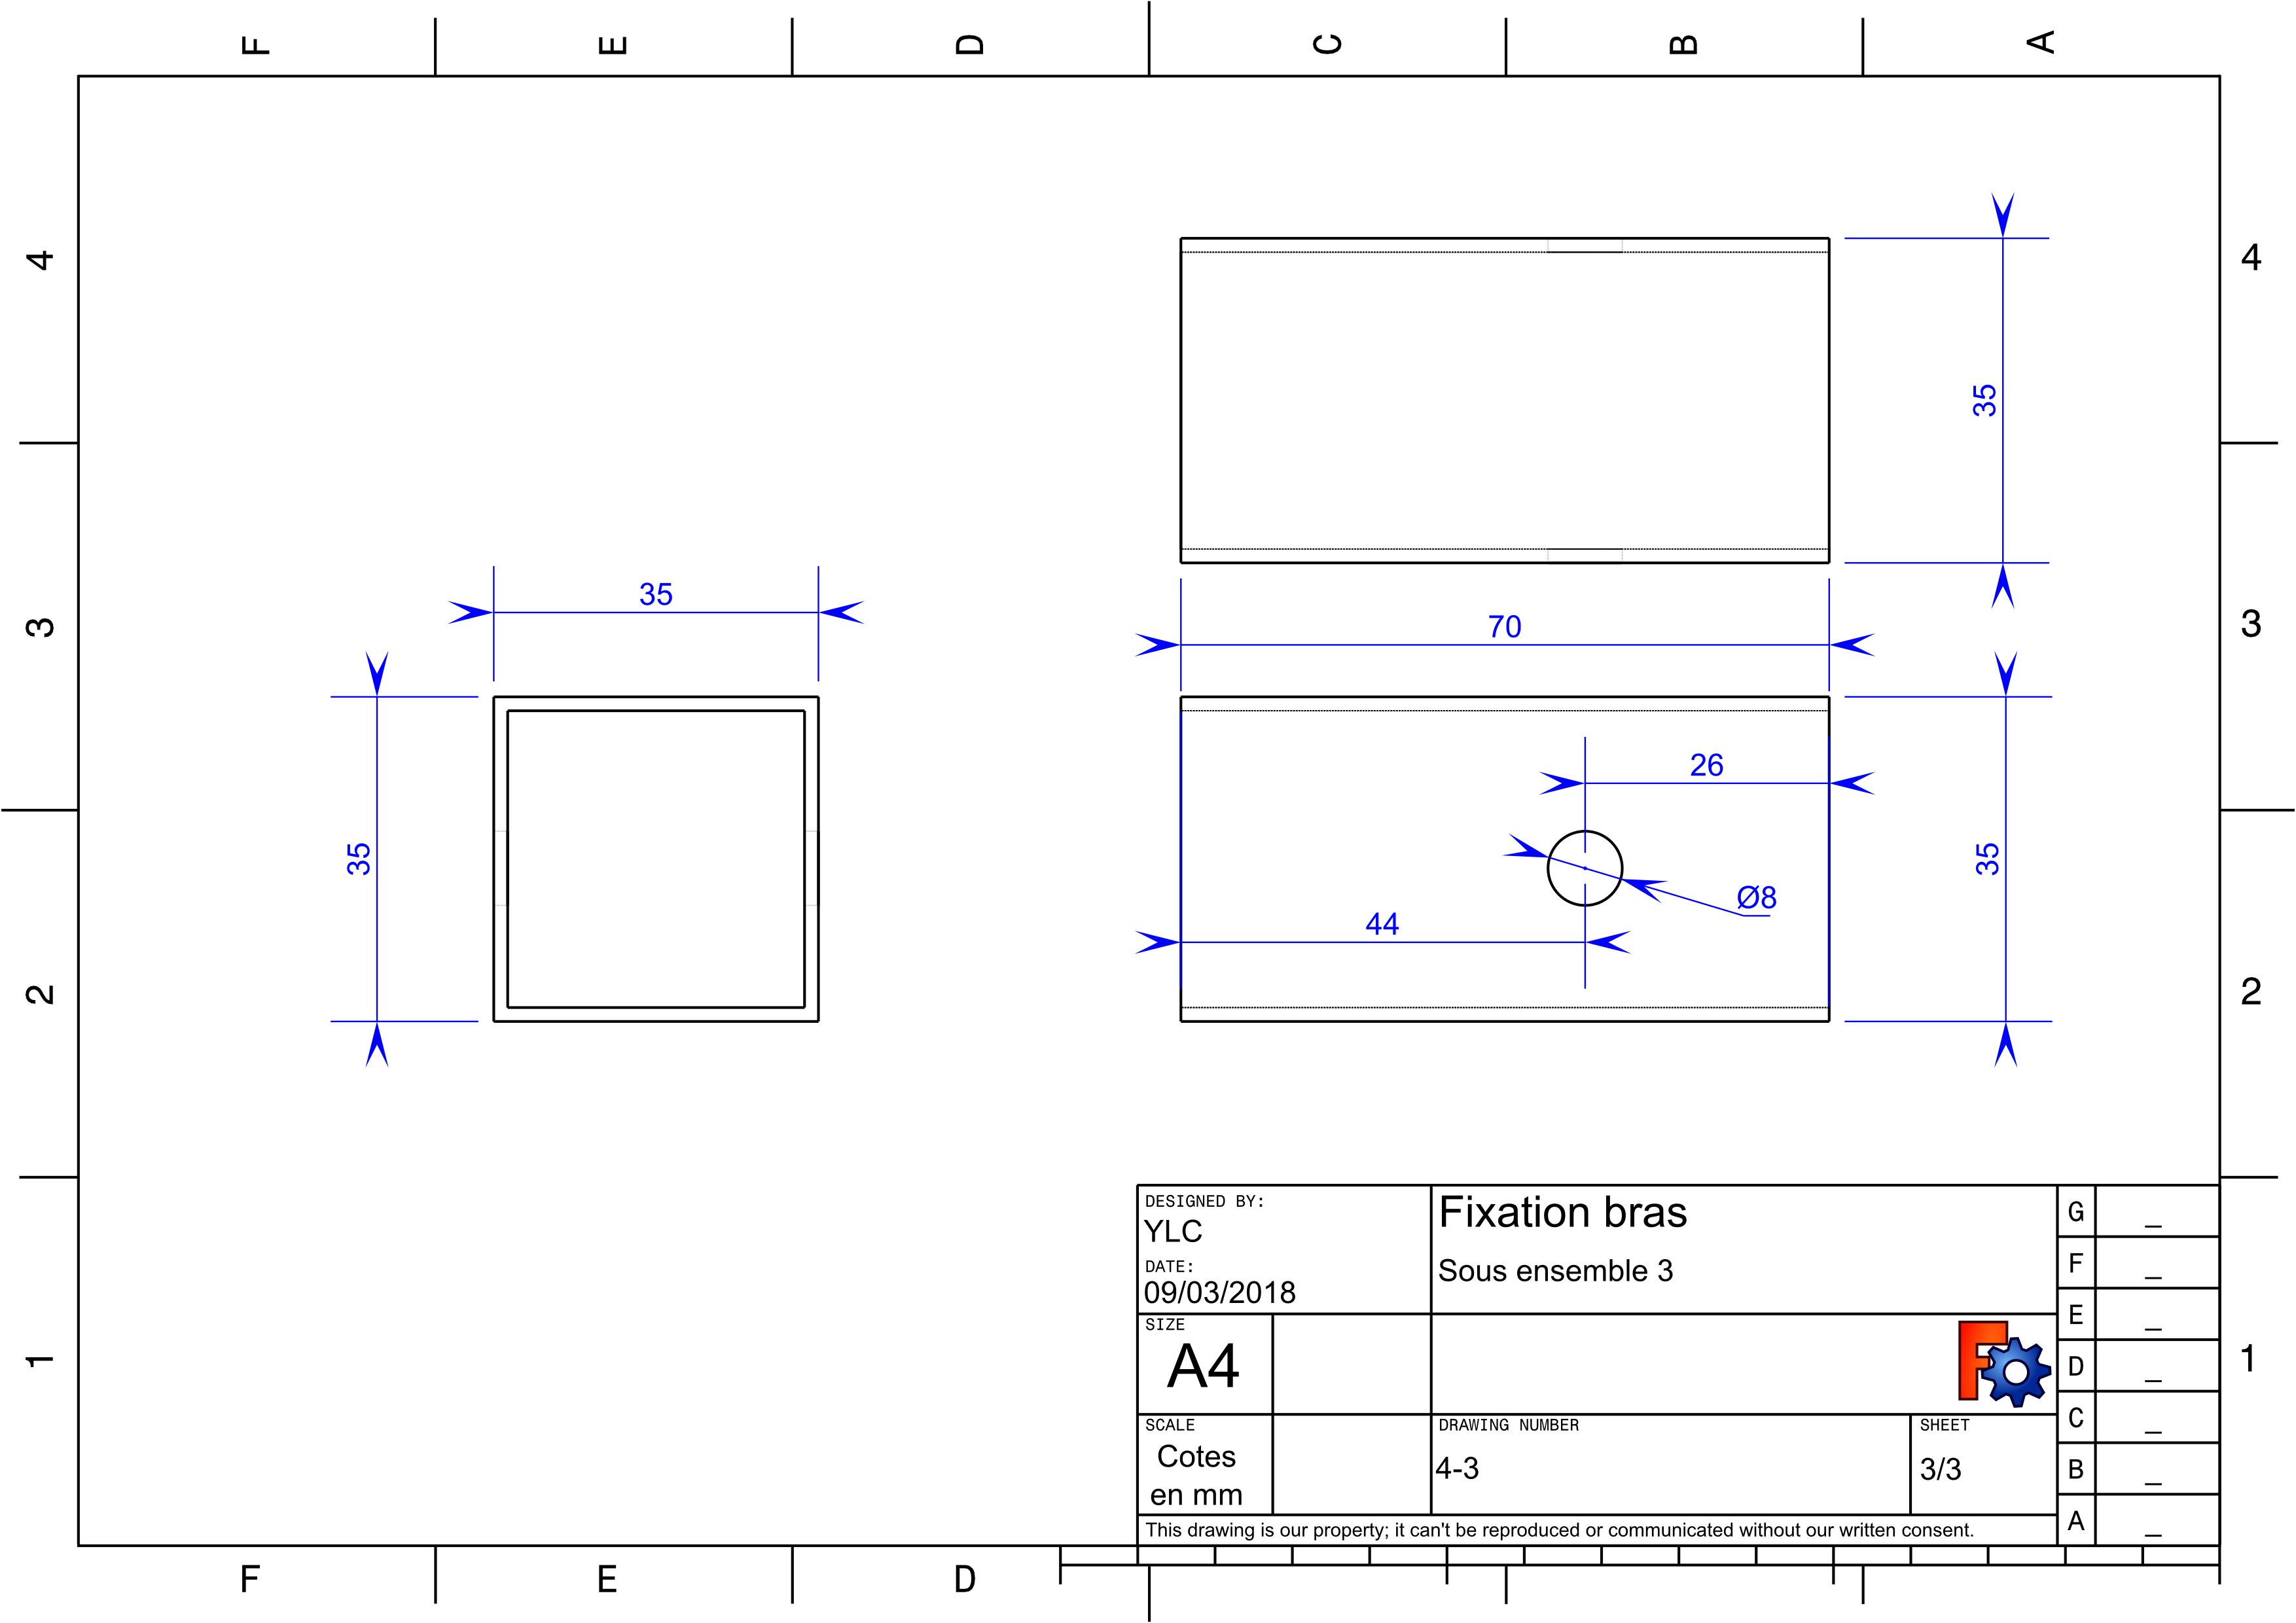 Annexe4 : plan pieces metal : Element3 de la fixation du bras.jpg